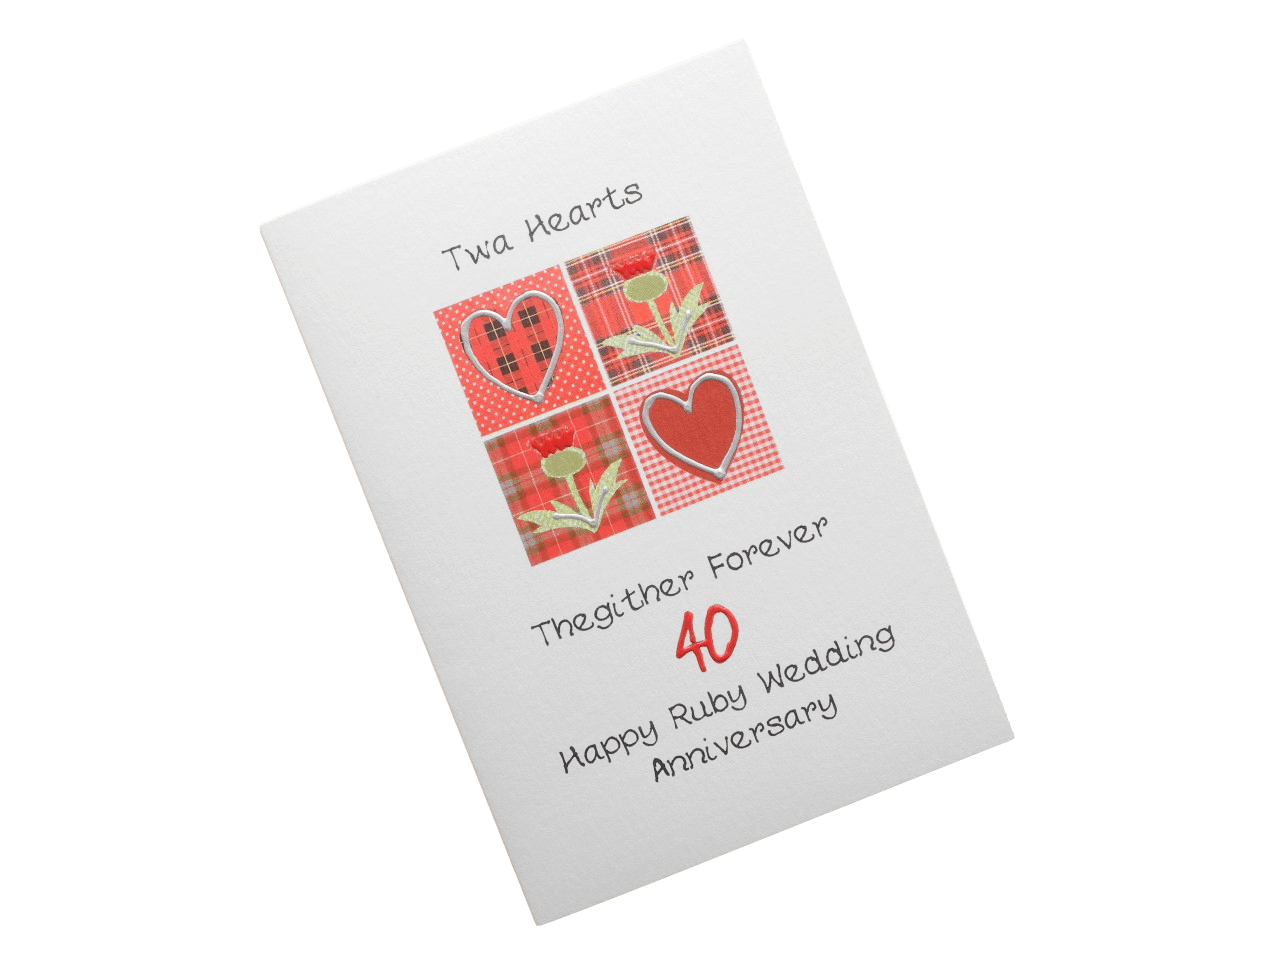 scottish ruby 40th anniversary card tartan hearts thistles doric scots language